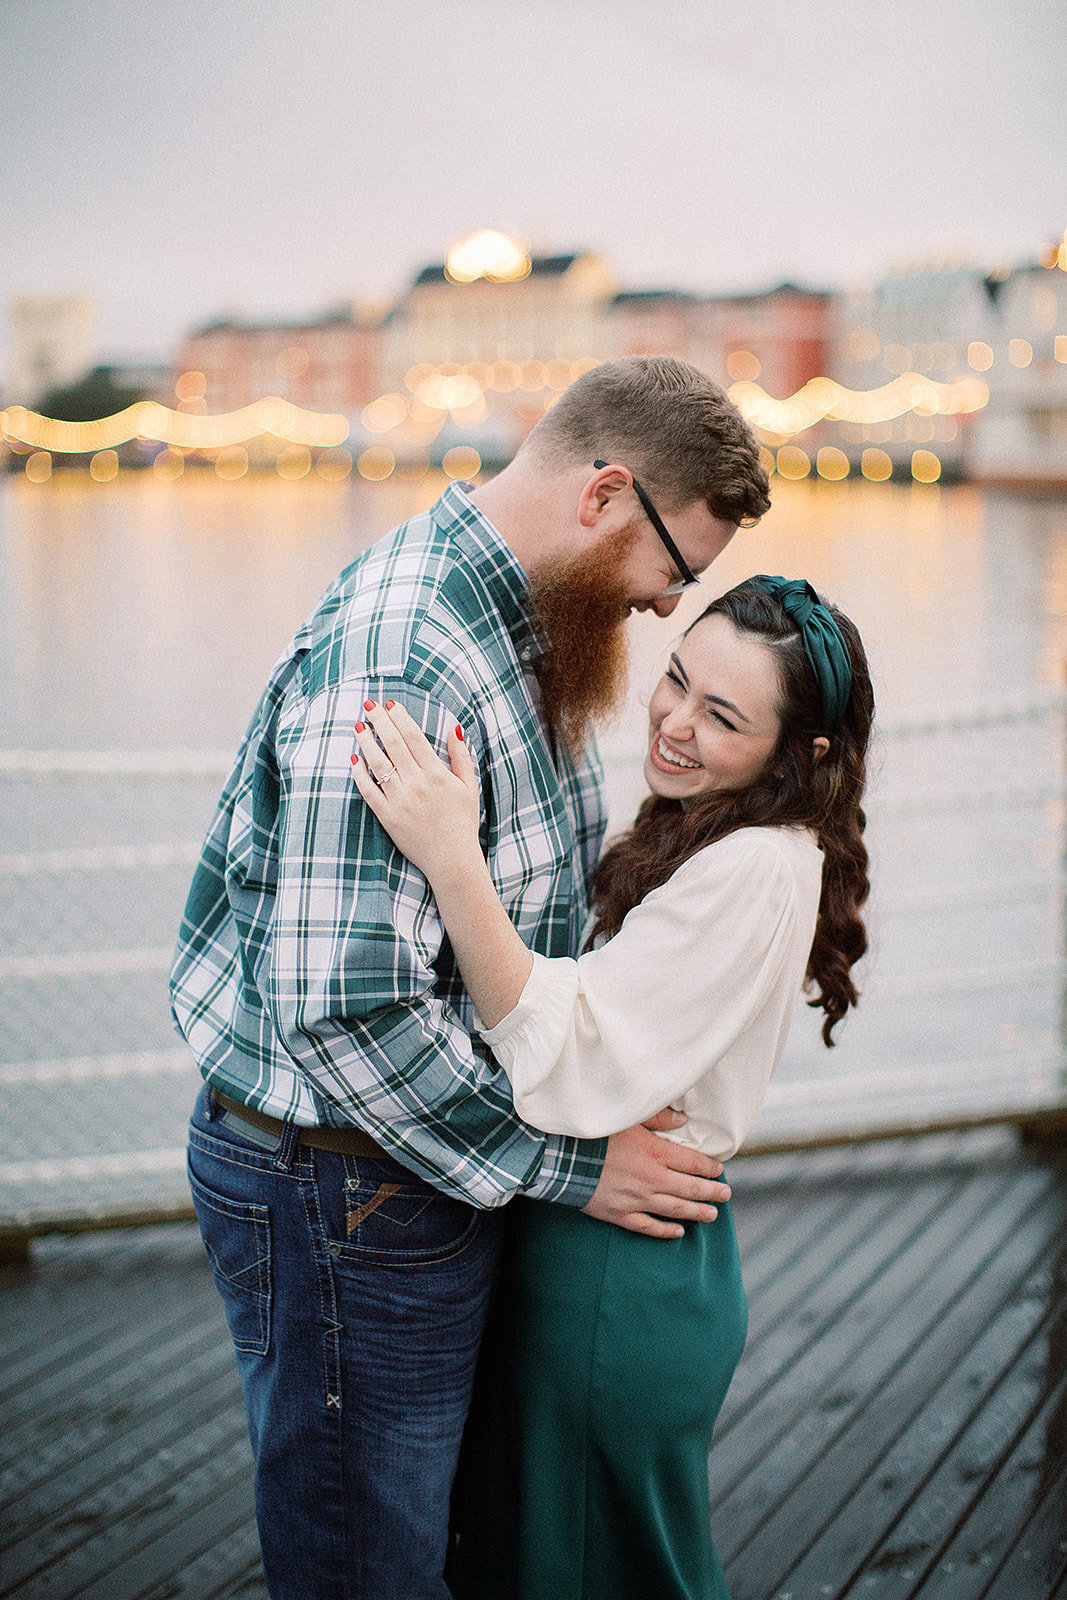 Cassidy_+_Kylor_Proposal_at_Disney_s_Beach_Club_Resort_Photographer_Casie_Marie_Photography-138